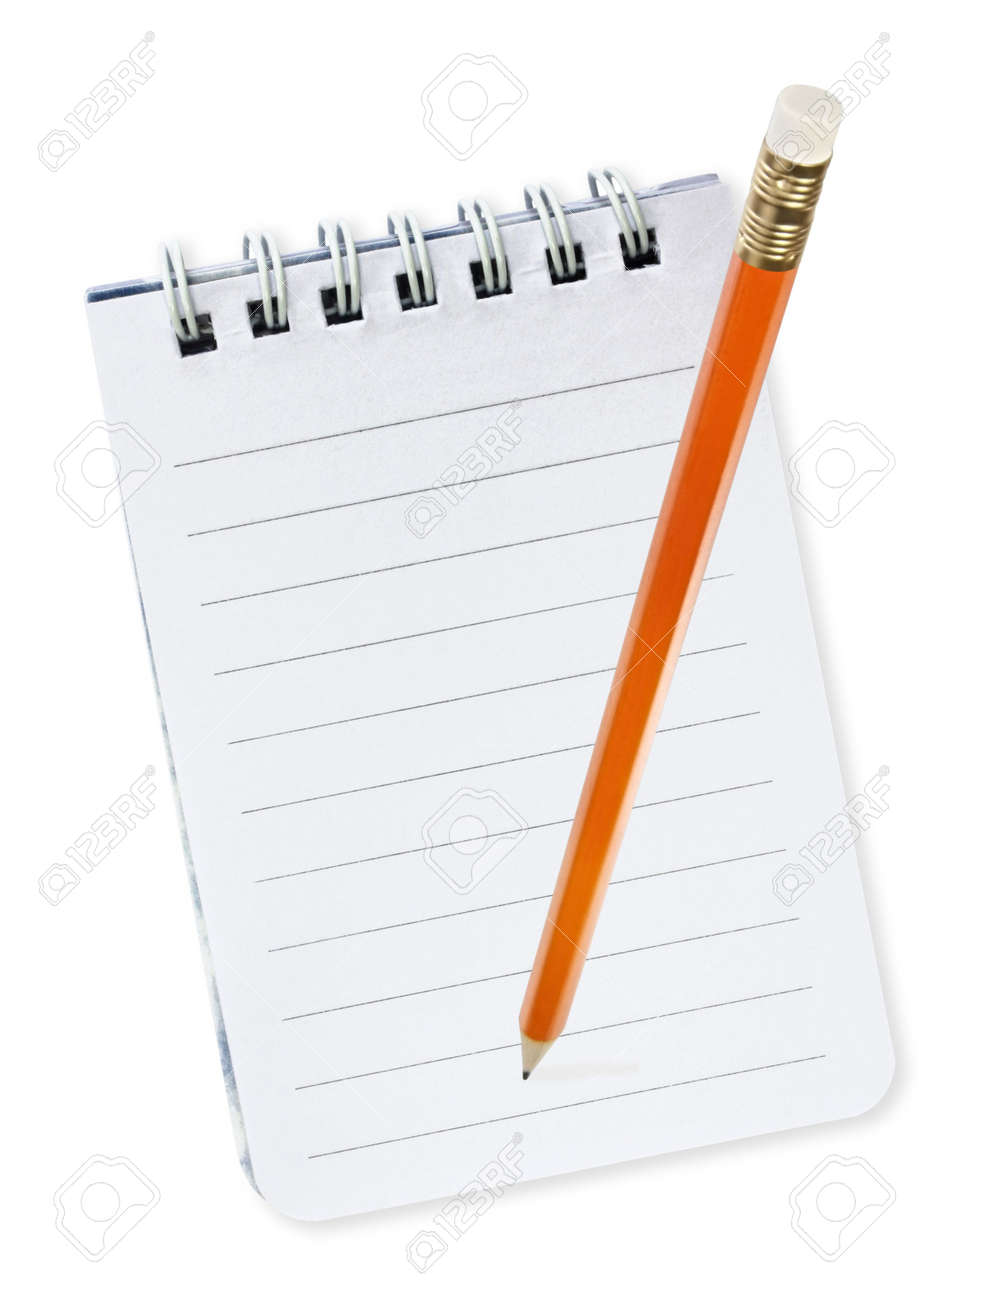 Pencil over spiral notebook, isolated on white. Stock Photo - 4597179